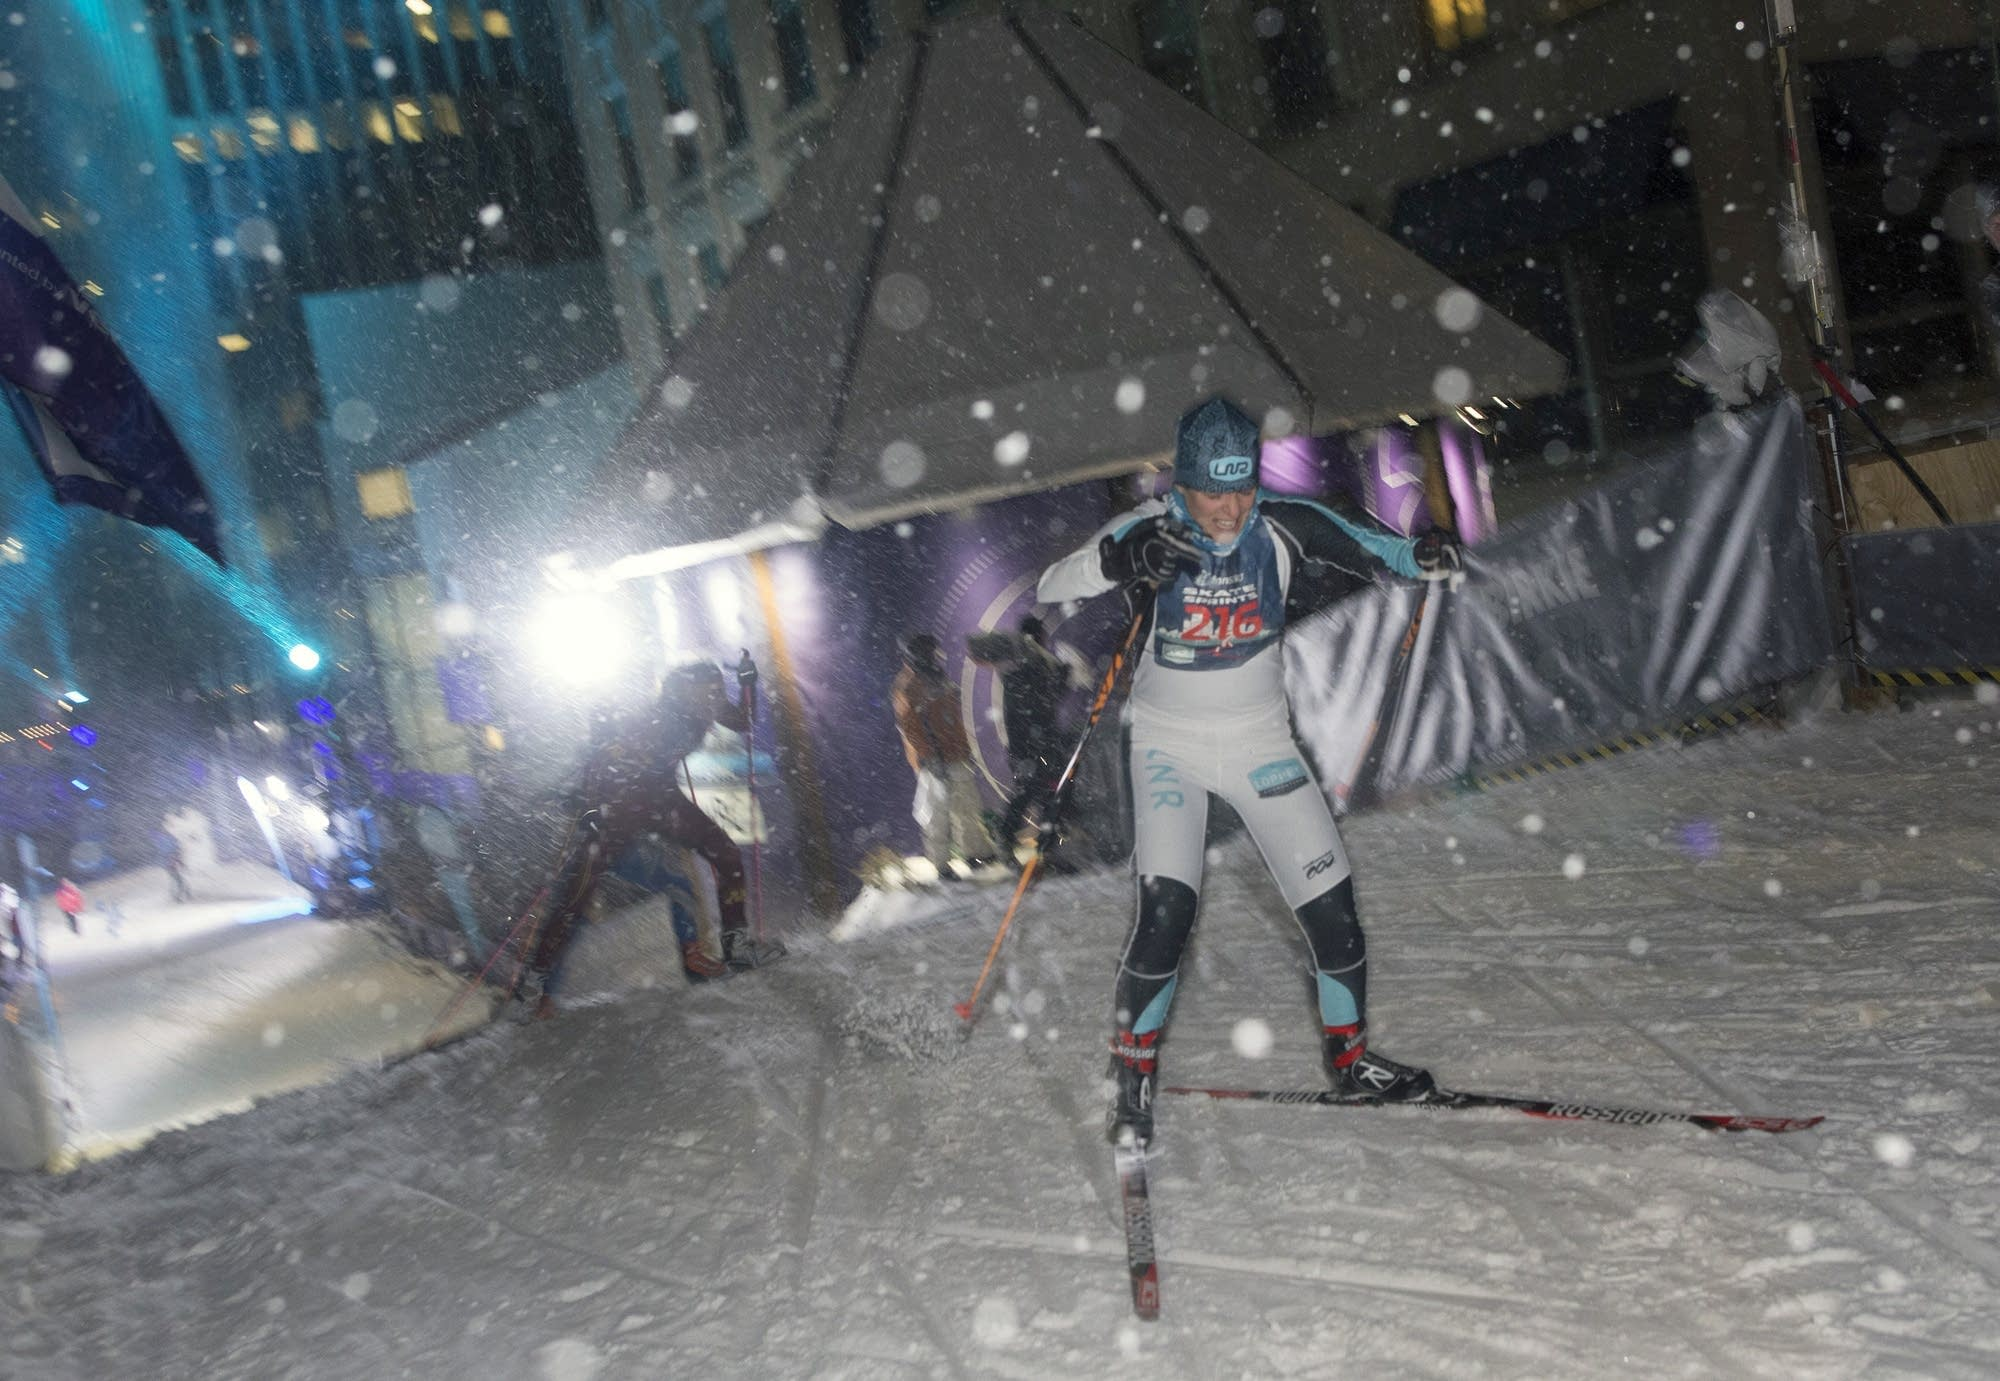 Nordic skiers competing in the loppet sprints climbed the hill.